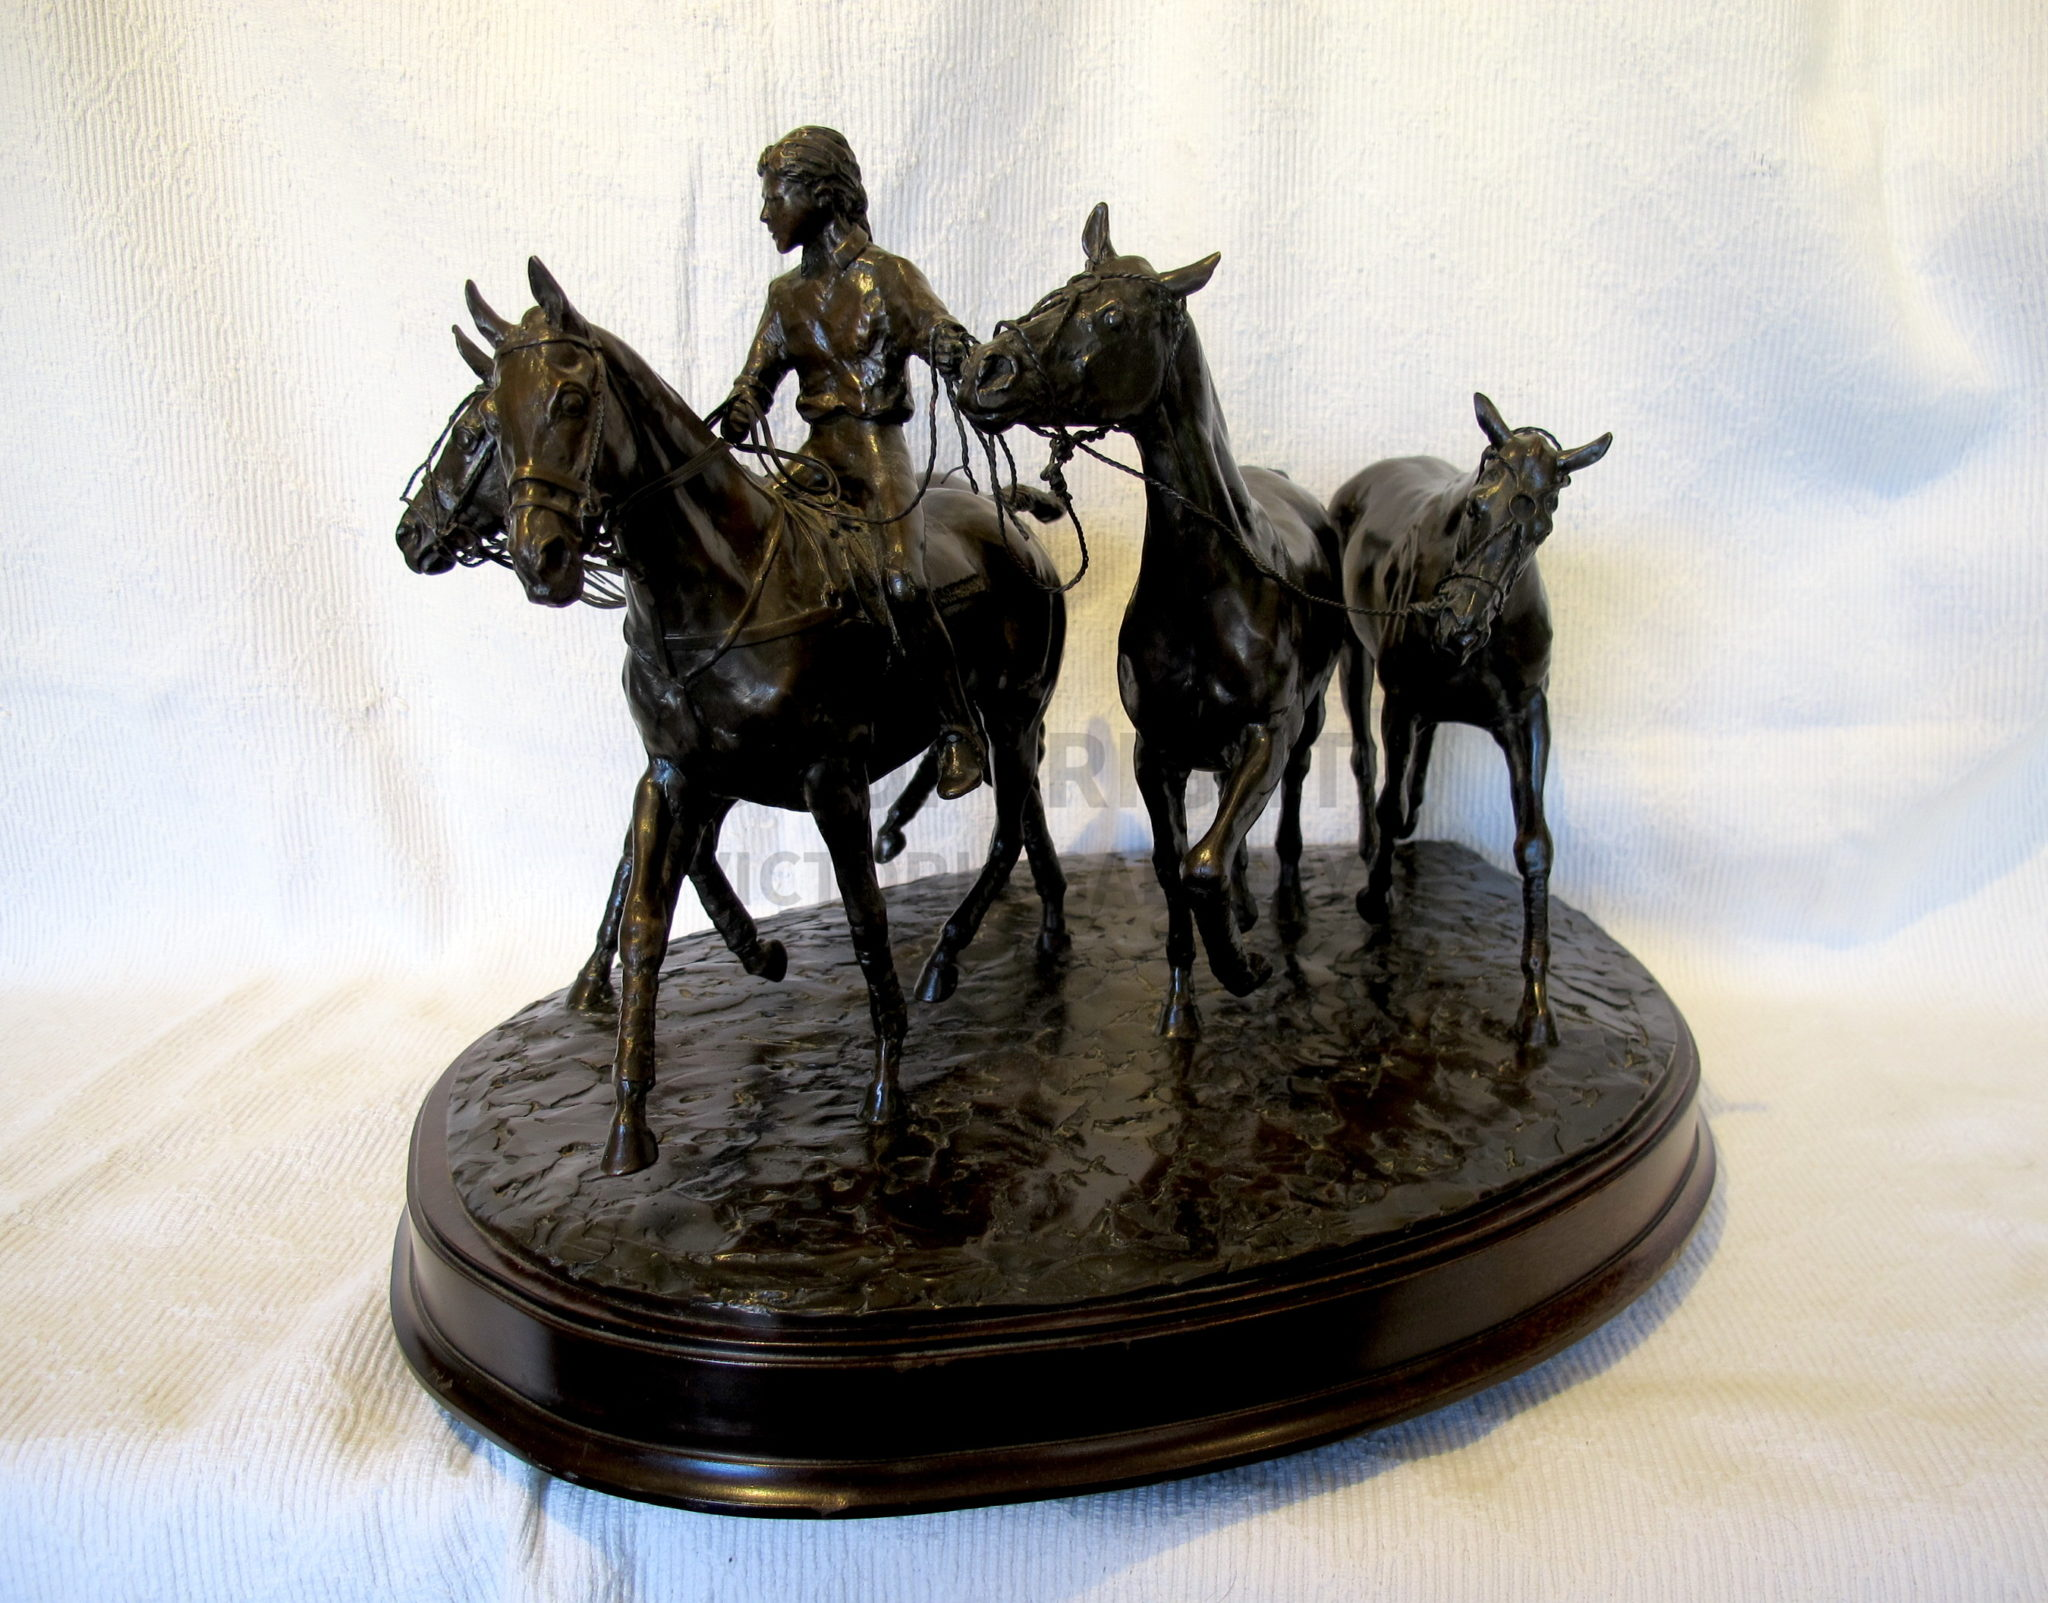 Bronze Sculpture 'Bringing on the Ponies' by Priscilla Hann (Polo)